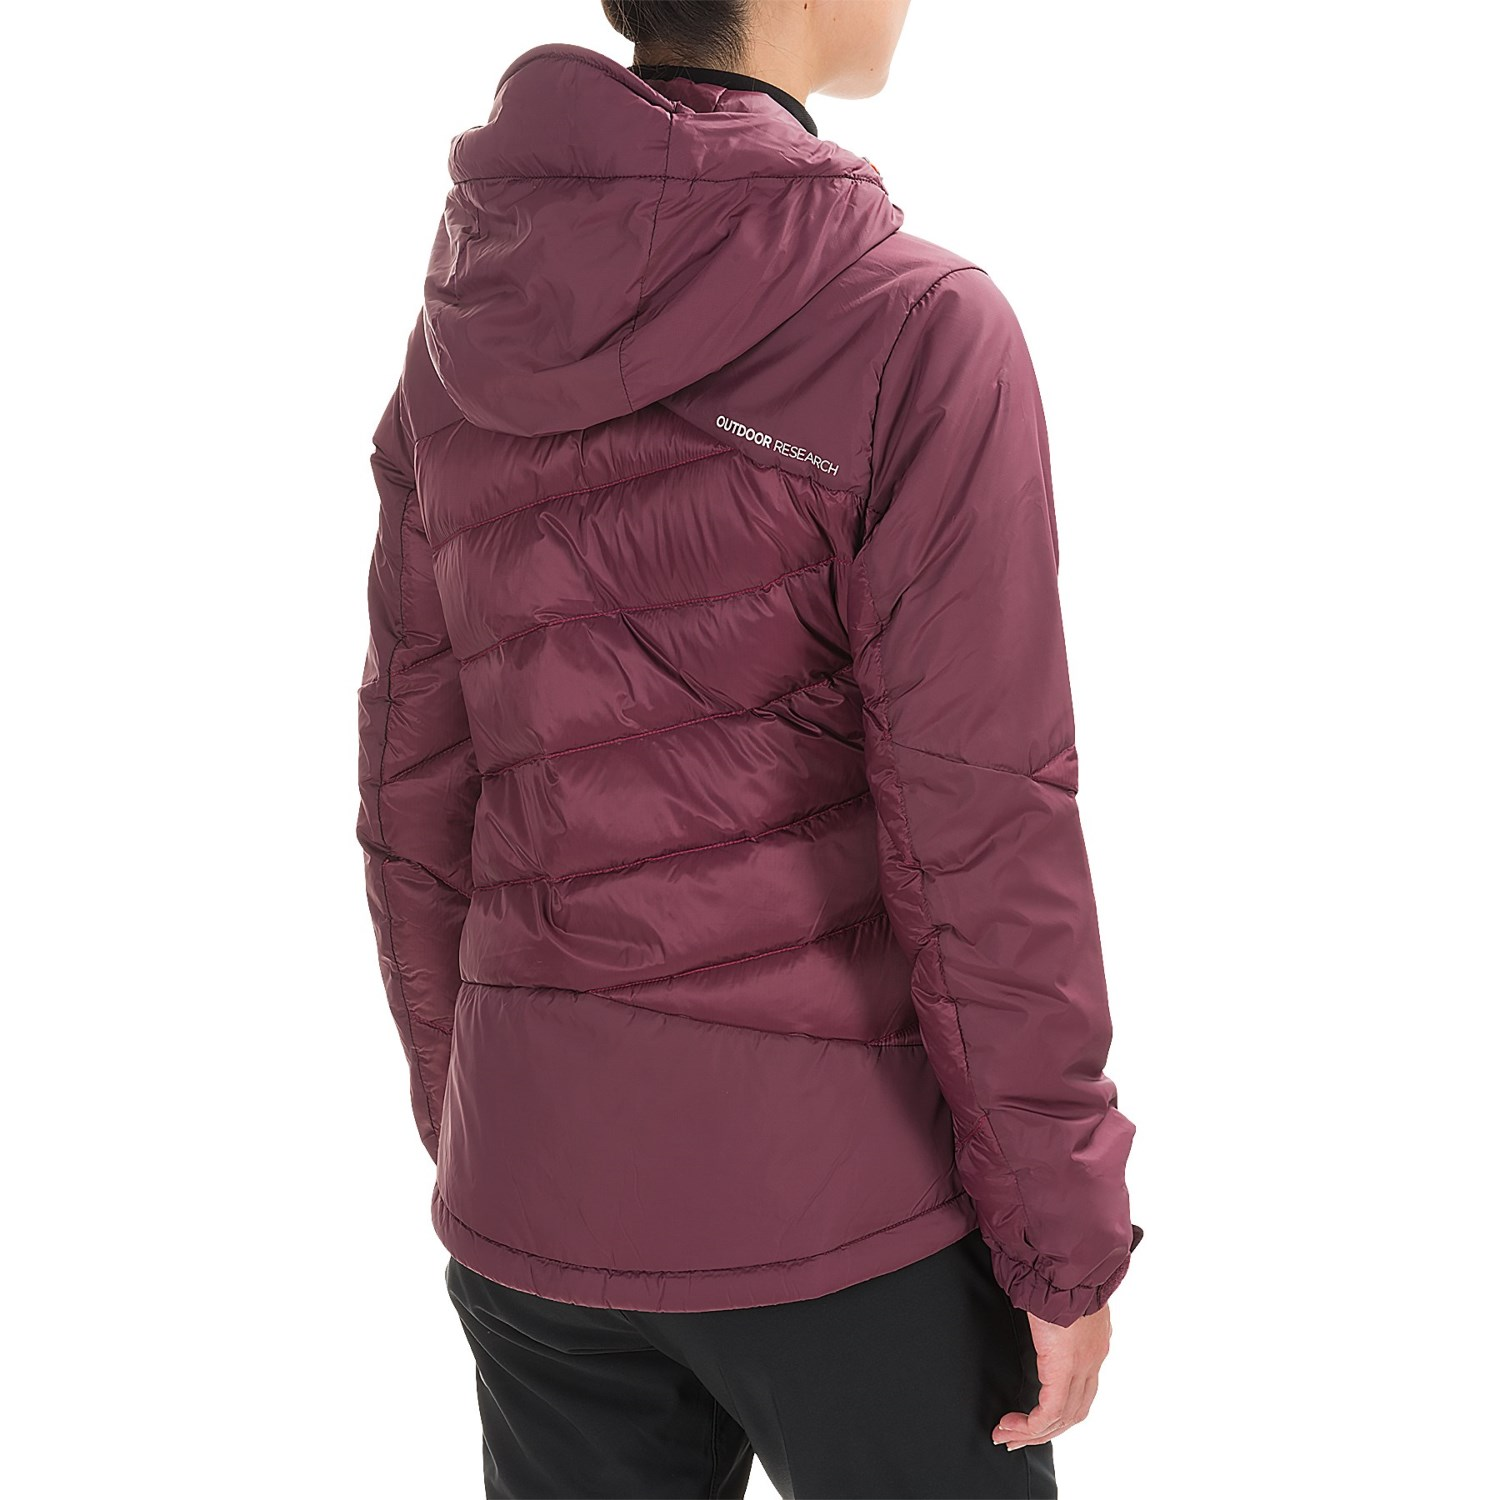 a975b841c3 ... Outdoor Research Diode Hooded Down Jacket - Insulated (For Women) Mens  Featherweight Windshirt jacket TNF ...